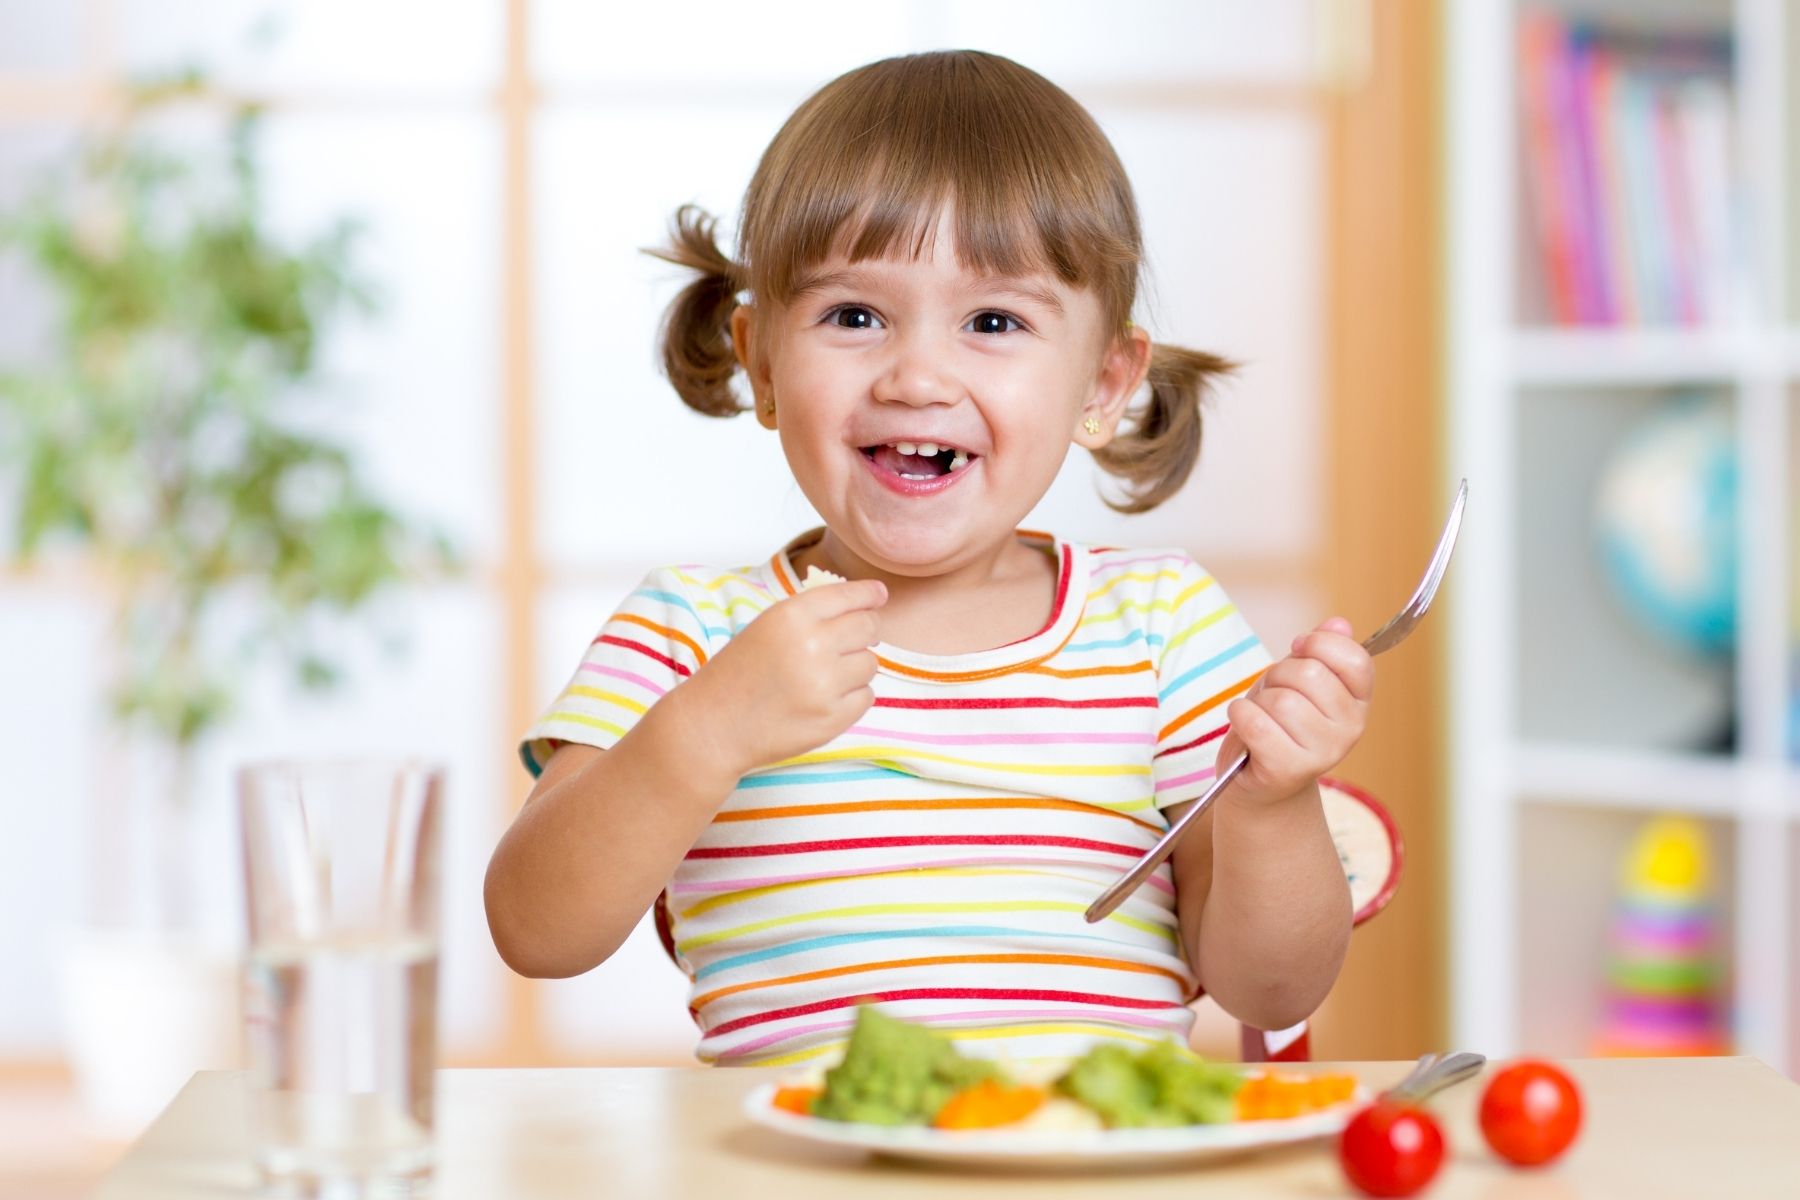 Happy Toddler Eating Meal